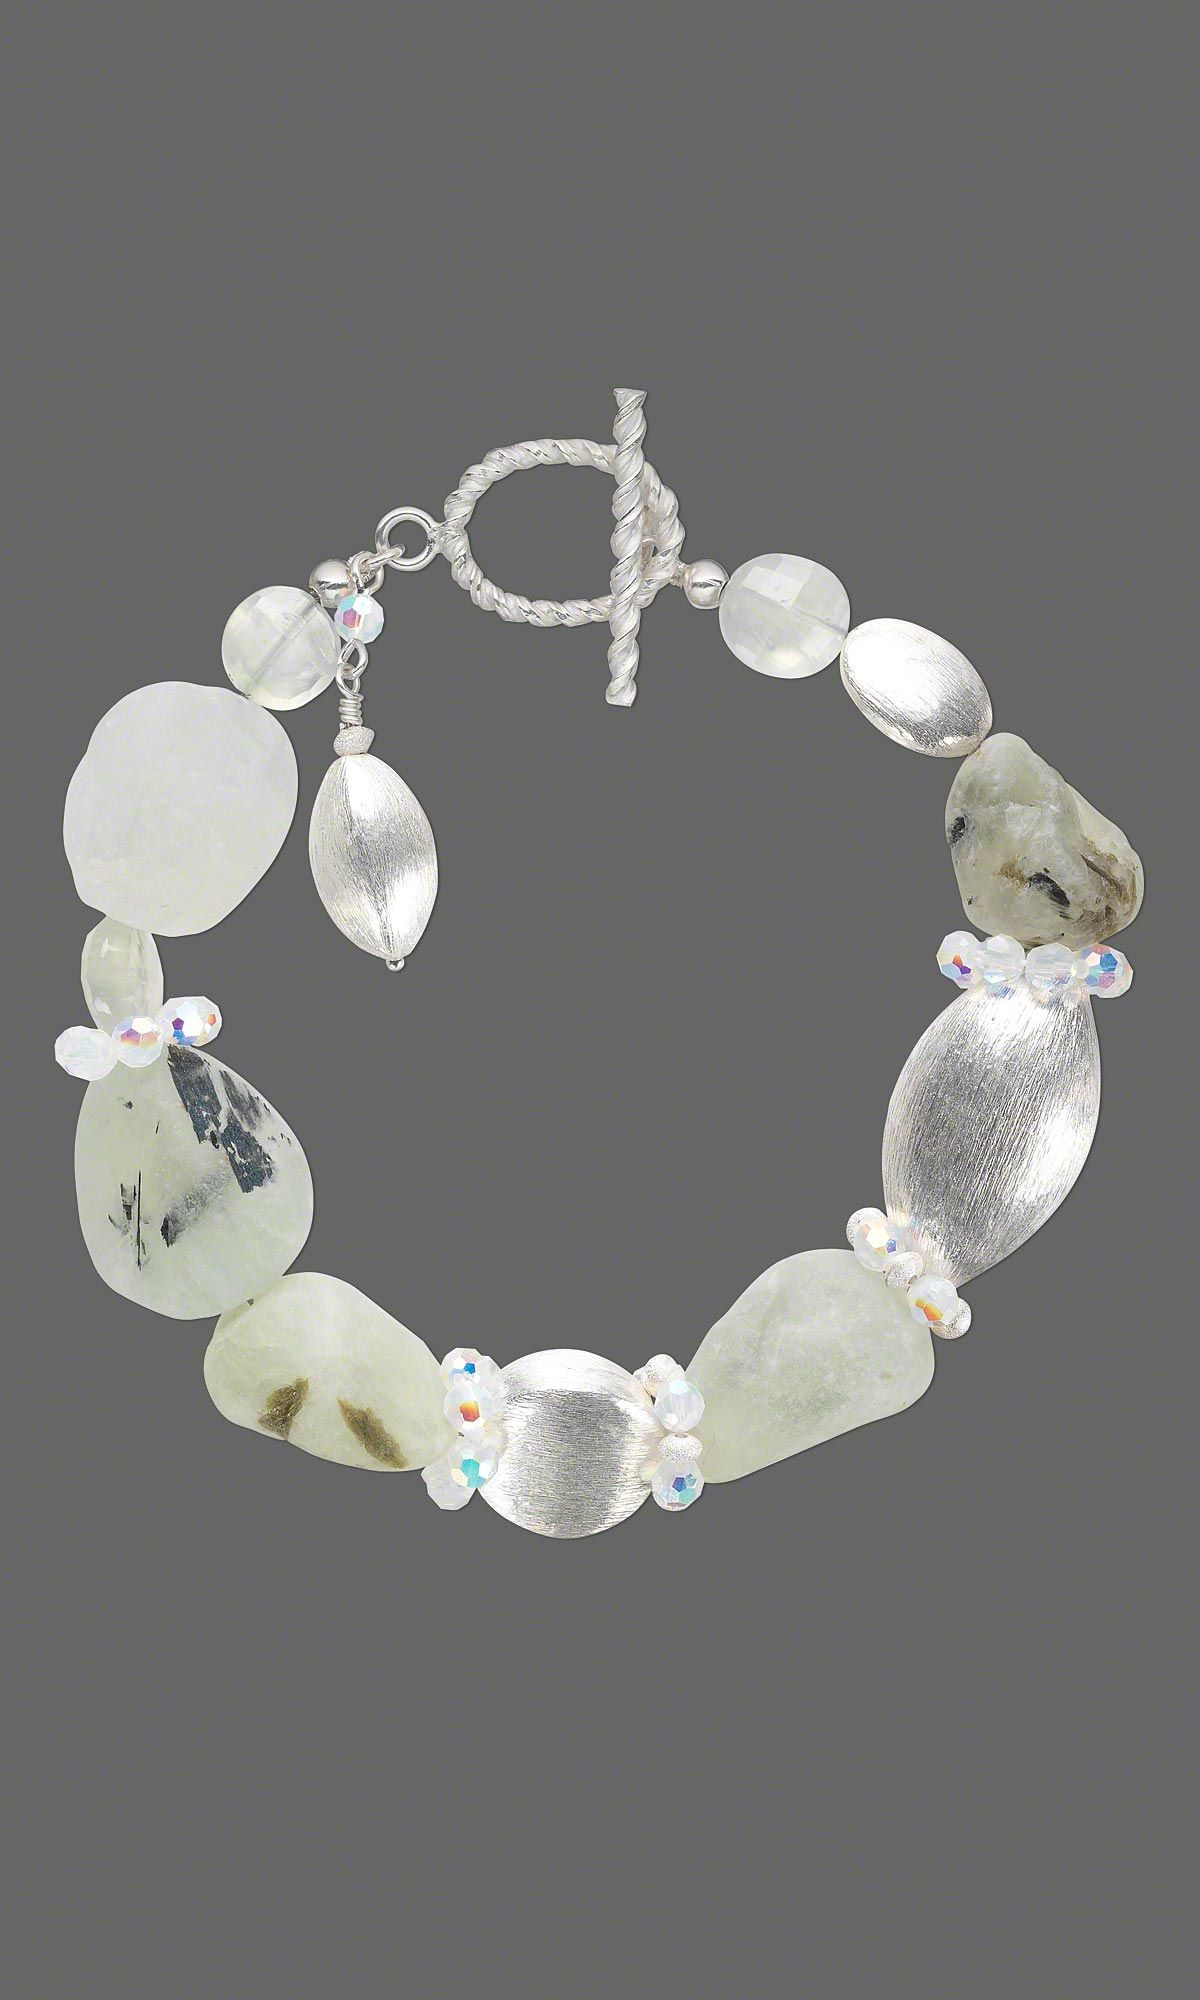 Jewelry design bracelet with sterling silver brushed beads